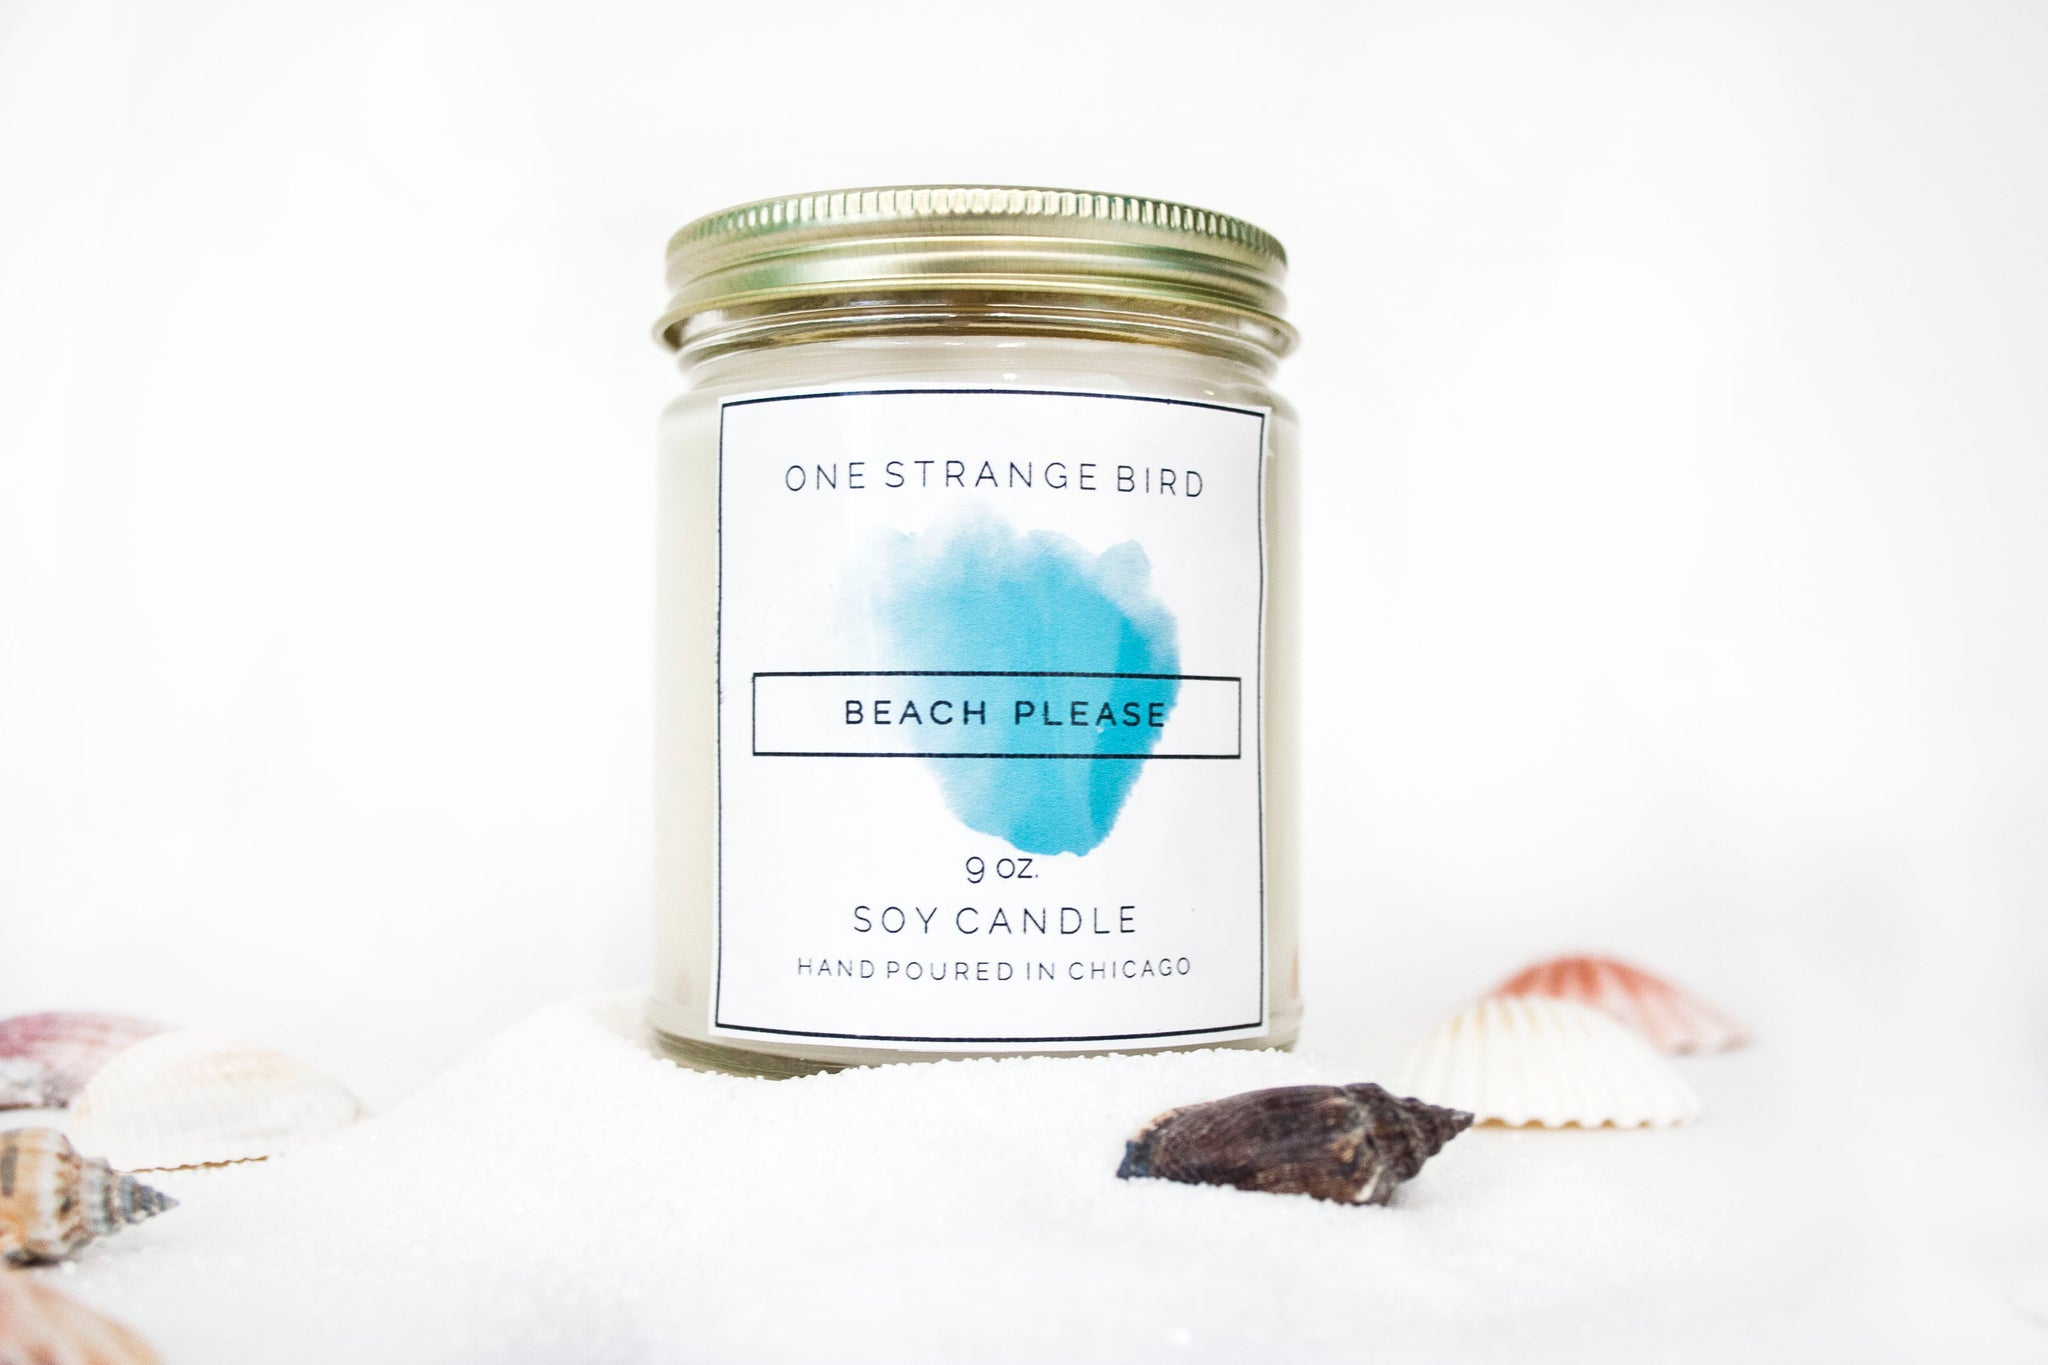 Beach Please Handmade Soy Candles